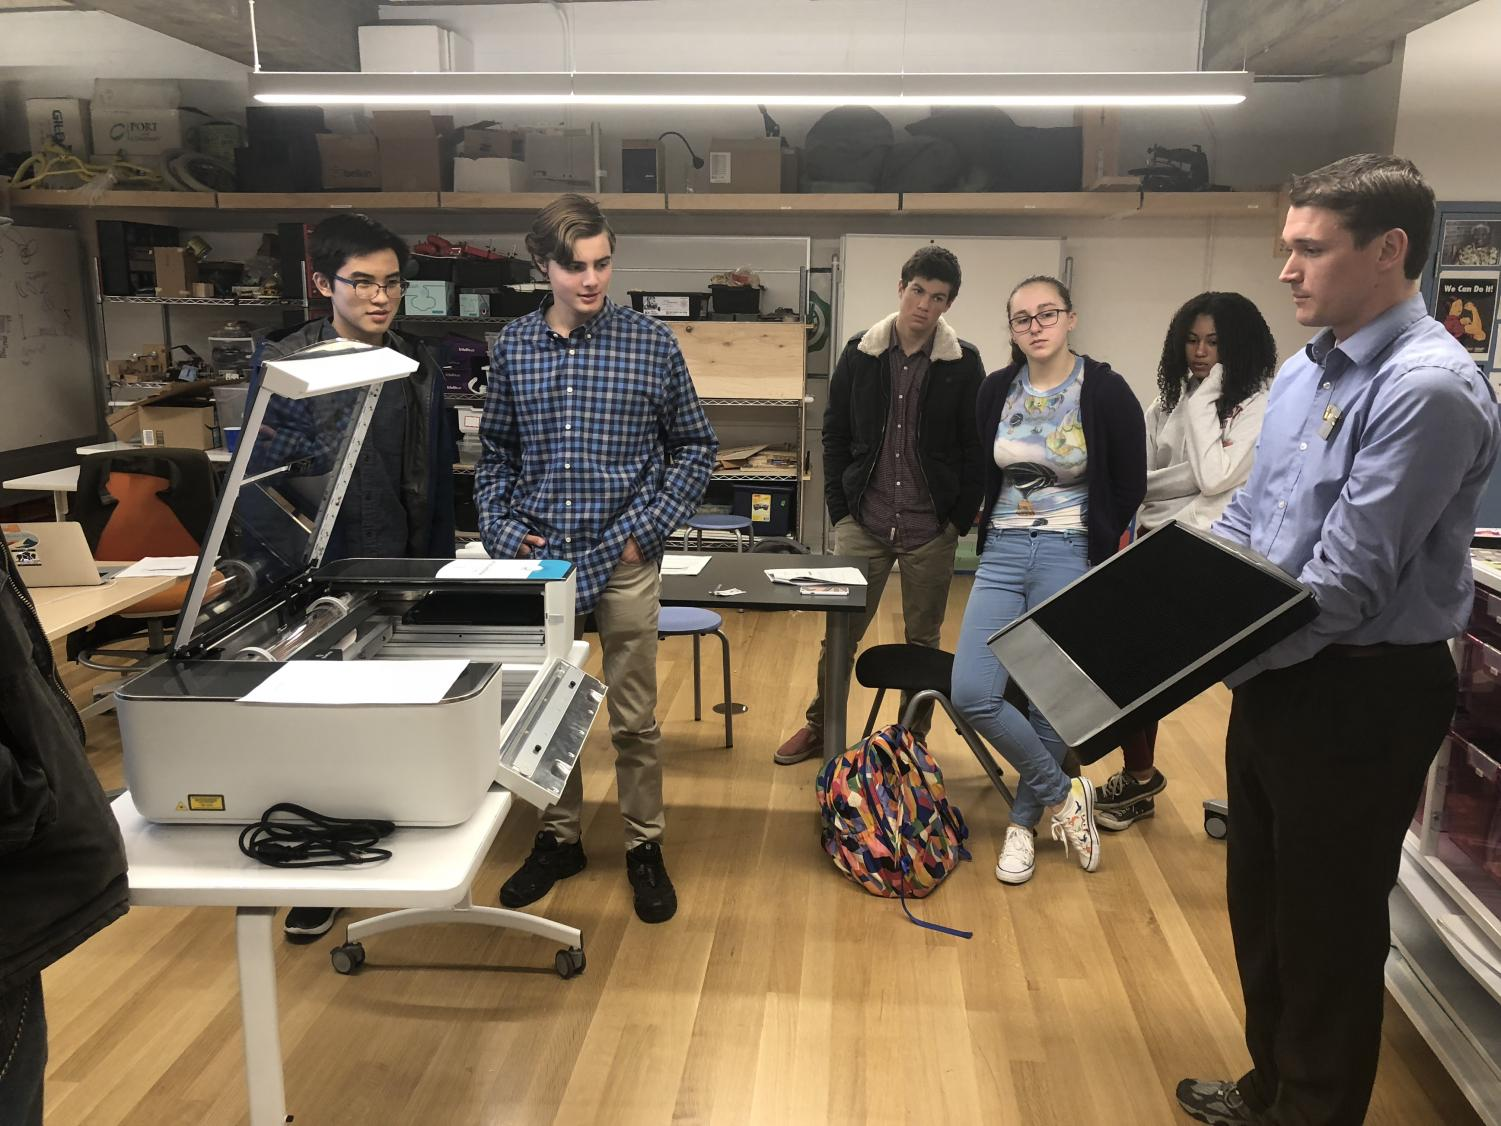 Students gather in Spark Studio for unveil of 3D laser printer. The printer was ordered two years ago and arrived in January.